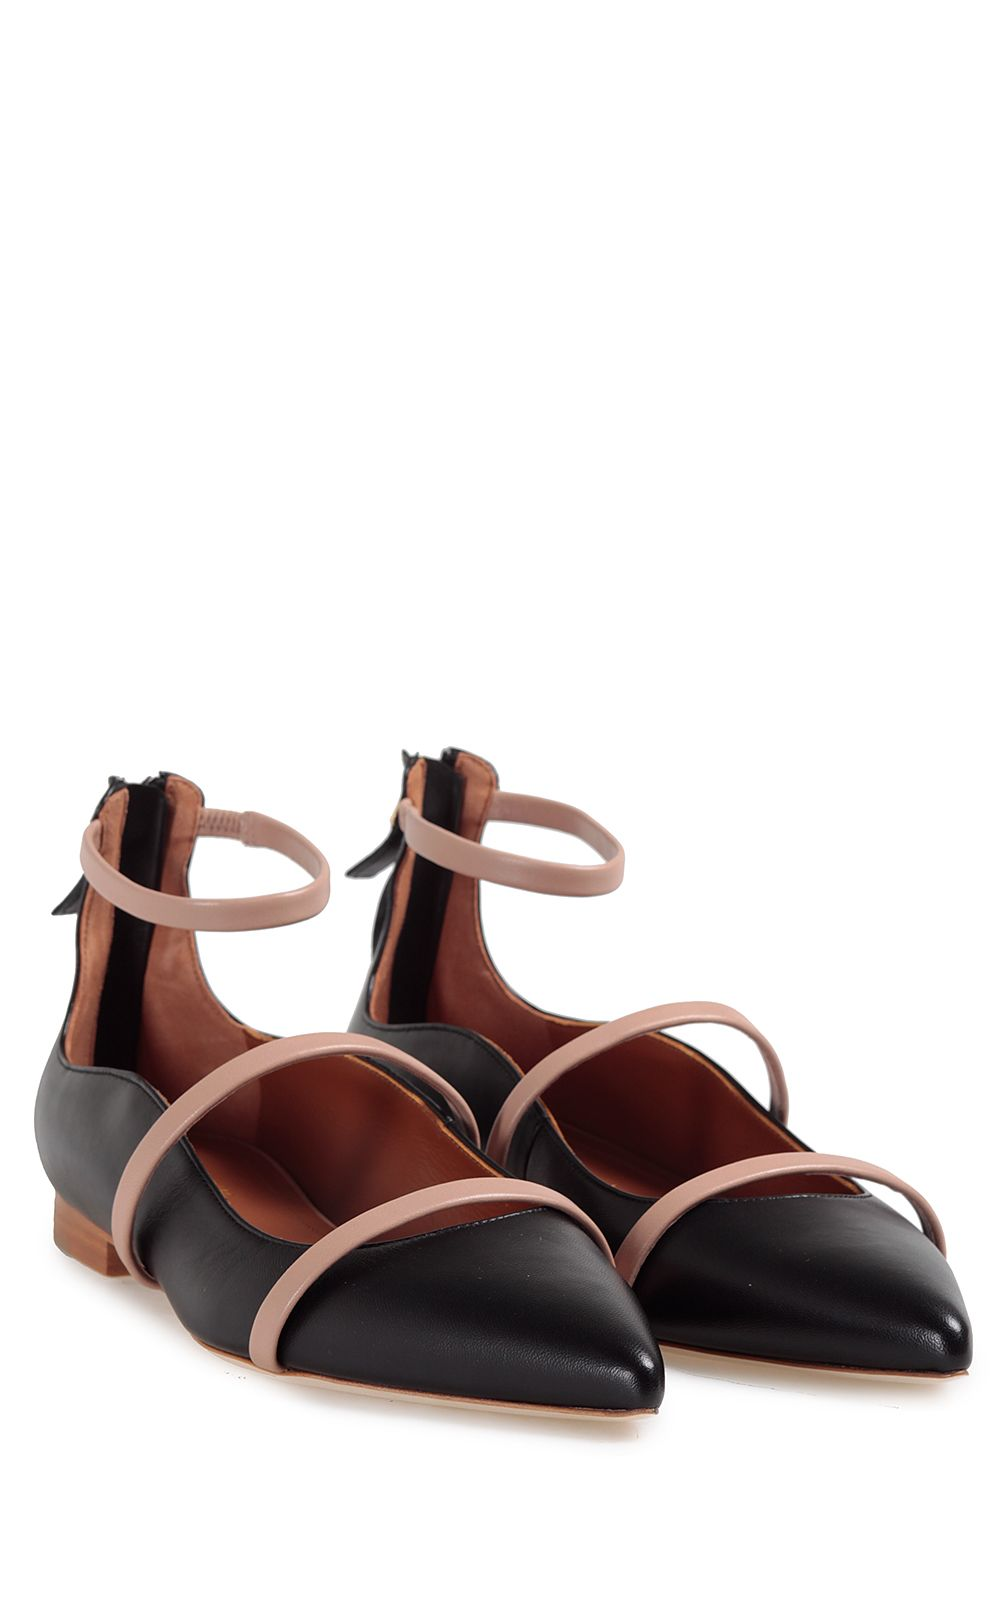 Malone Souliers Robyn Point-toe Leather Flats